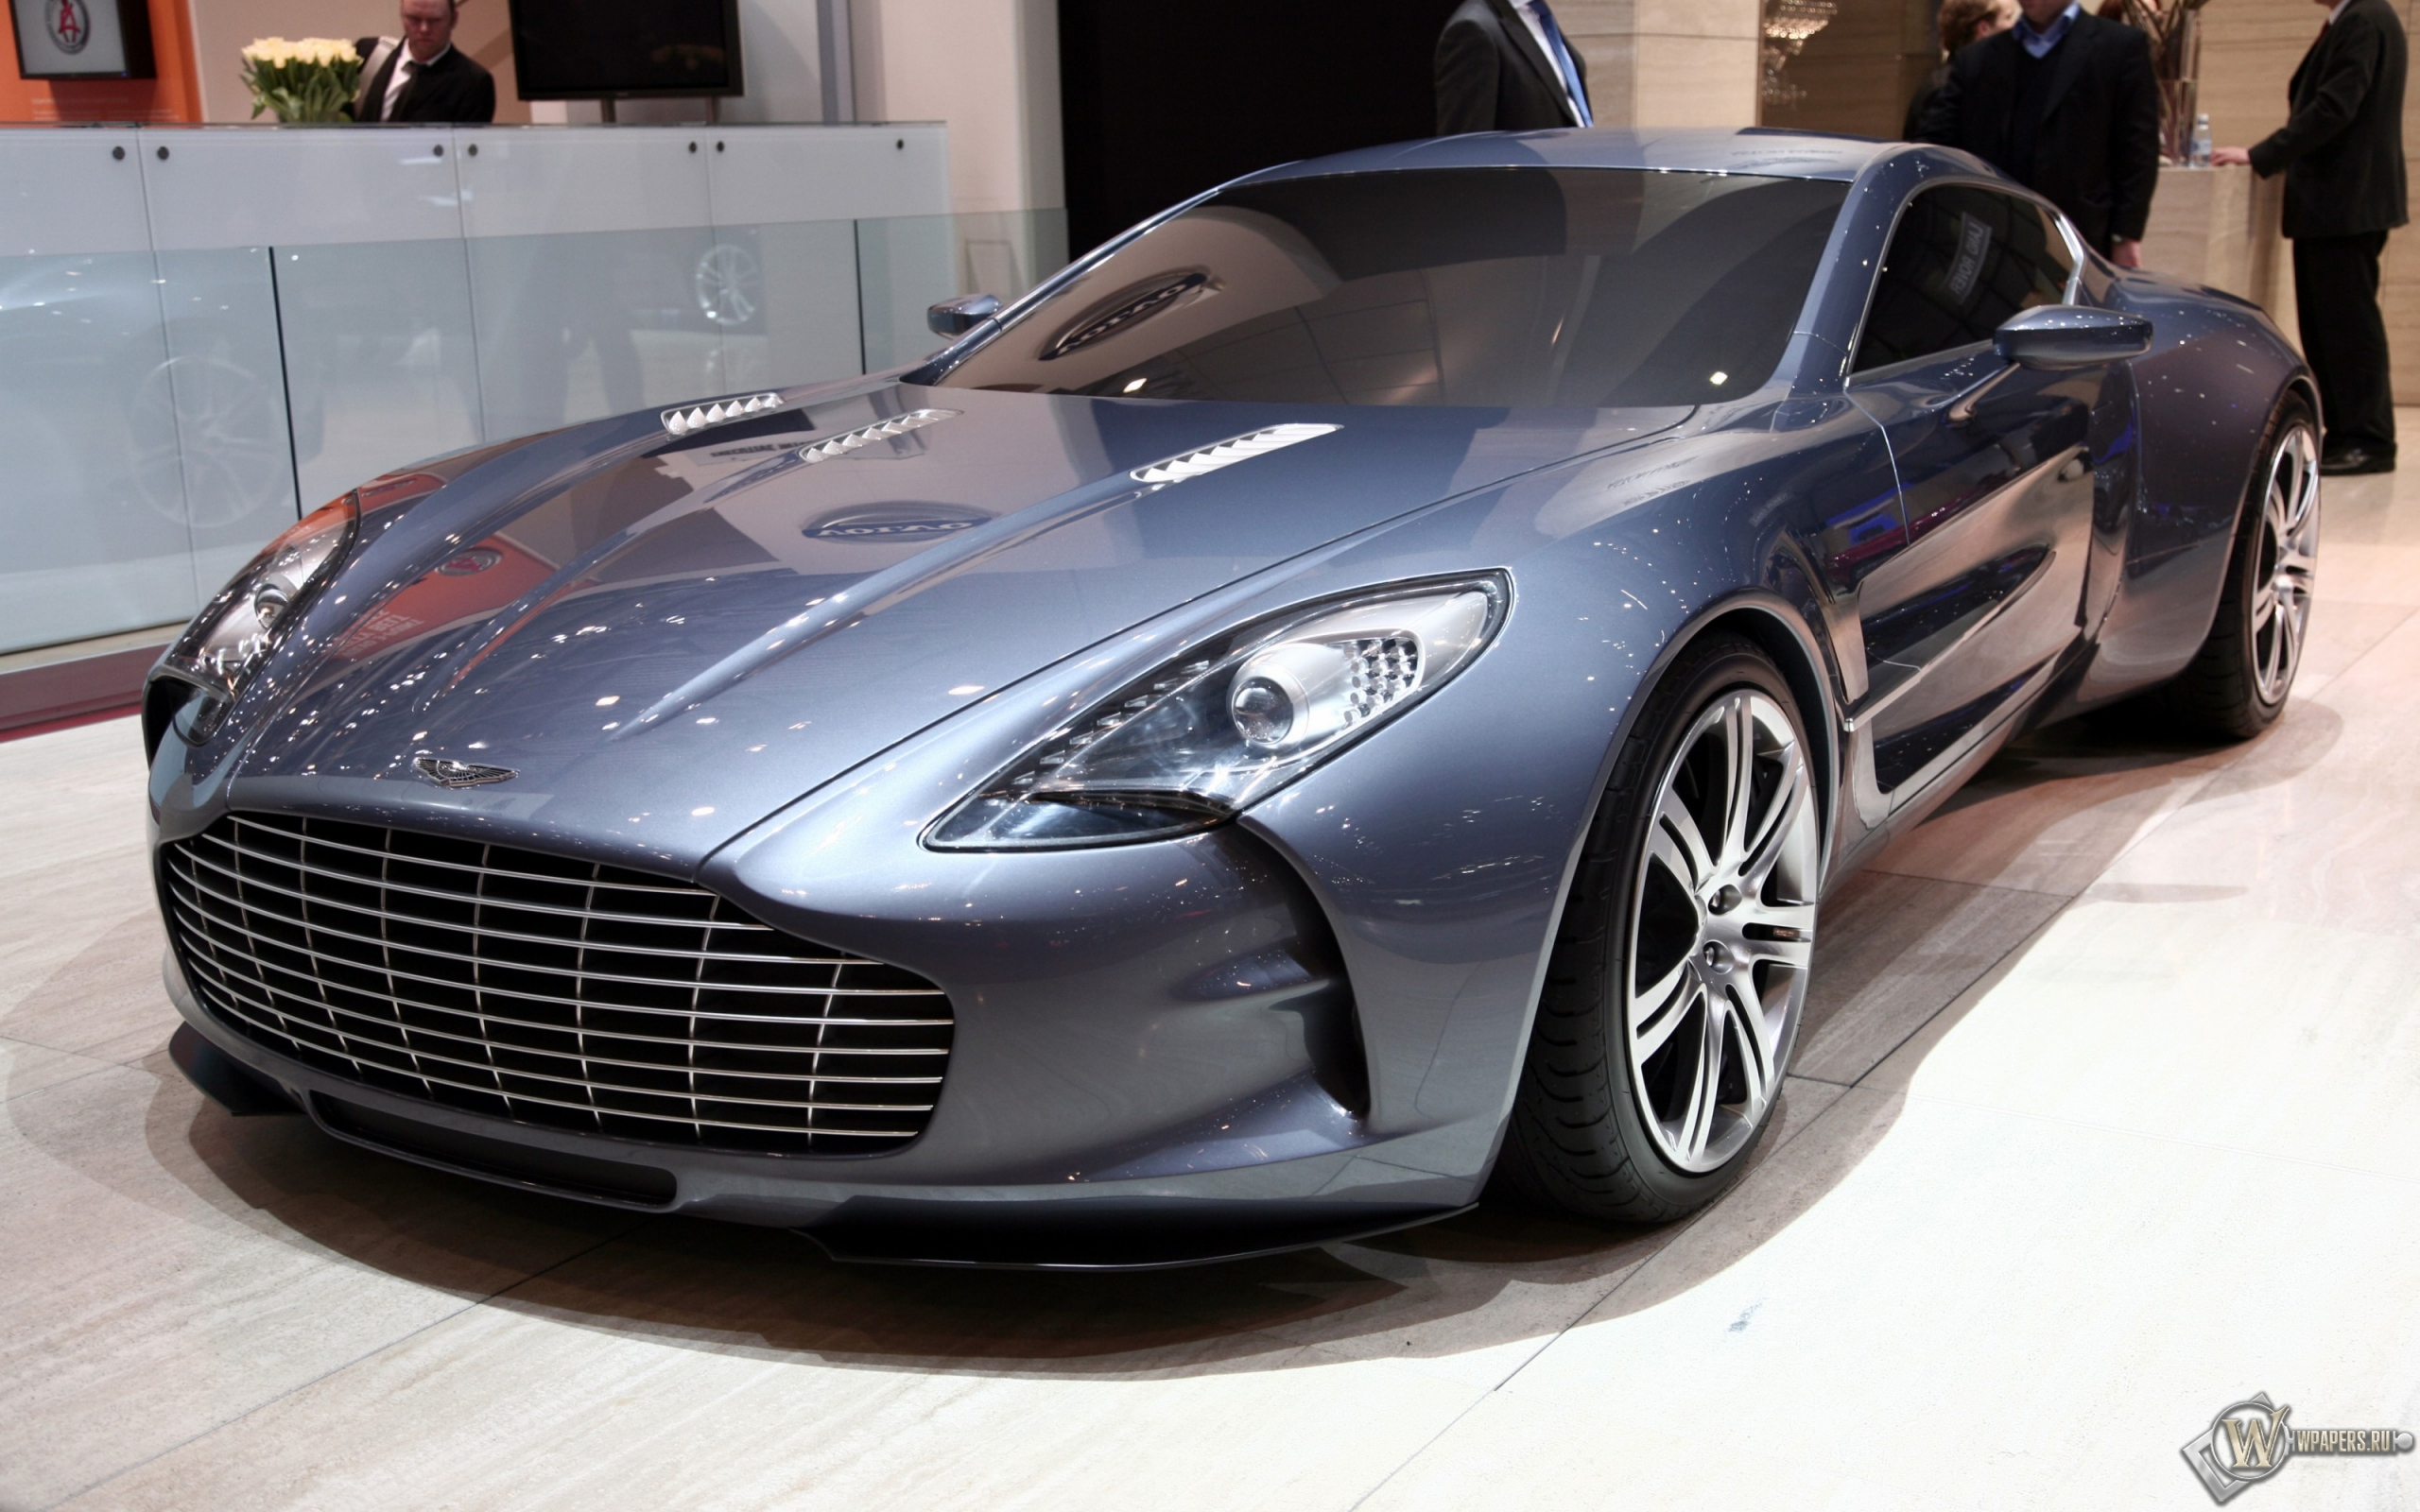 aston martin research paper The aston martin vanquish is great for sun lovers and luxury shoppers carscom has the features of every vanquish model year -- see if it's right for you.